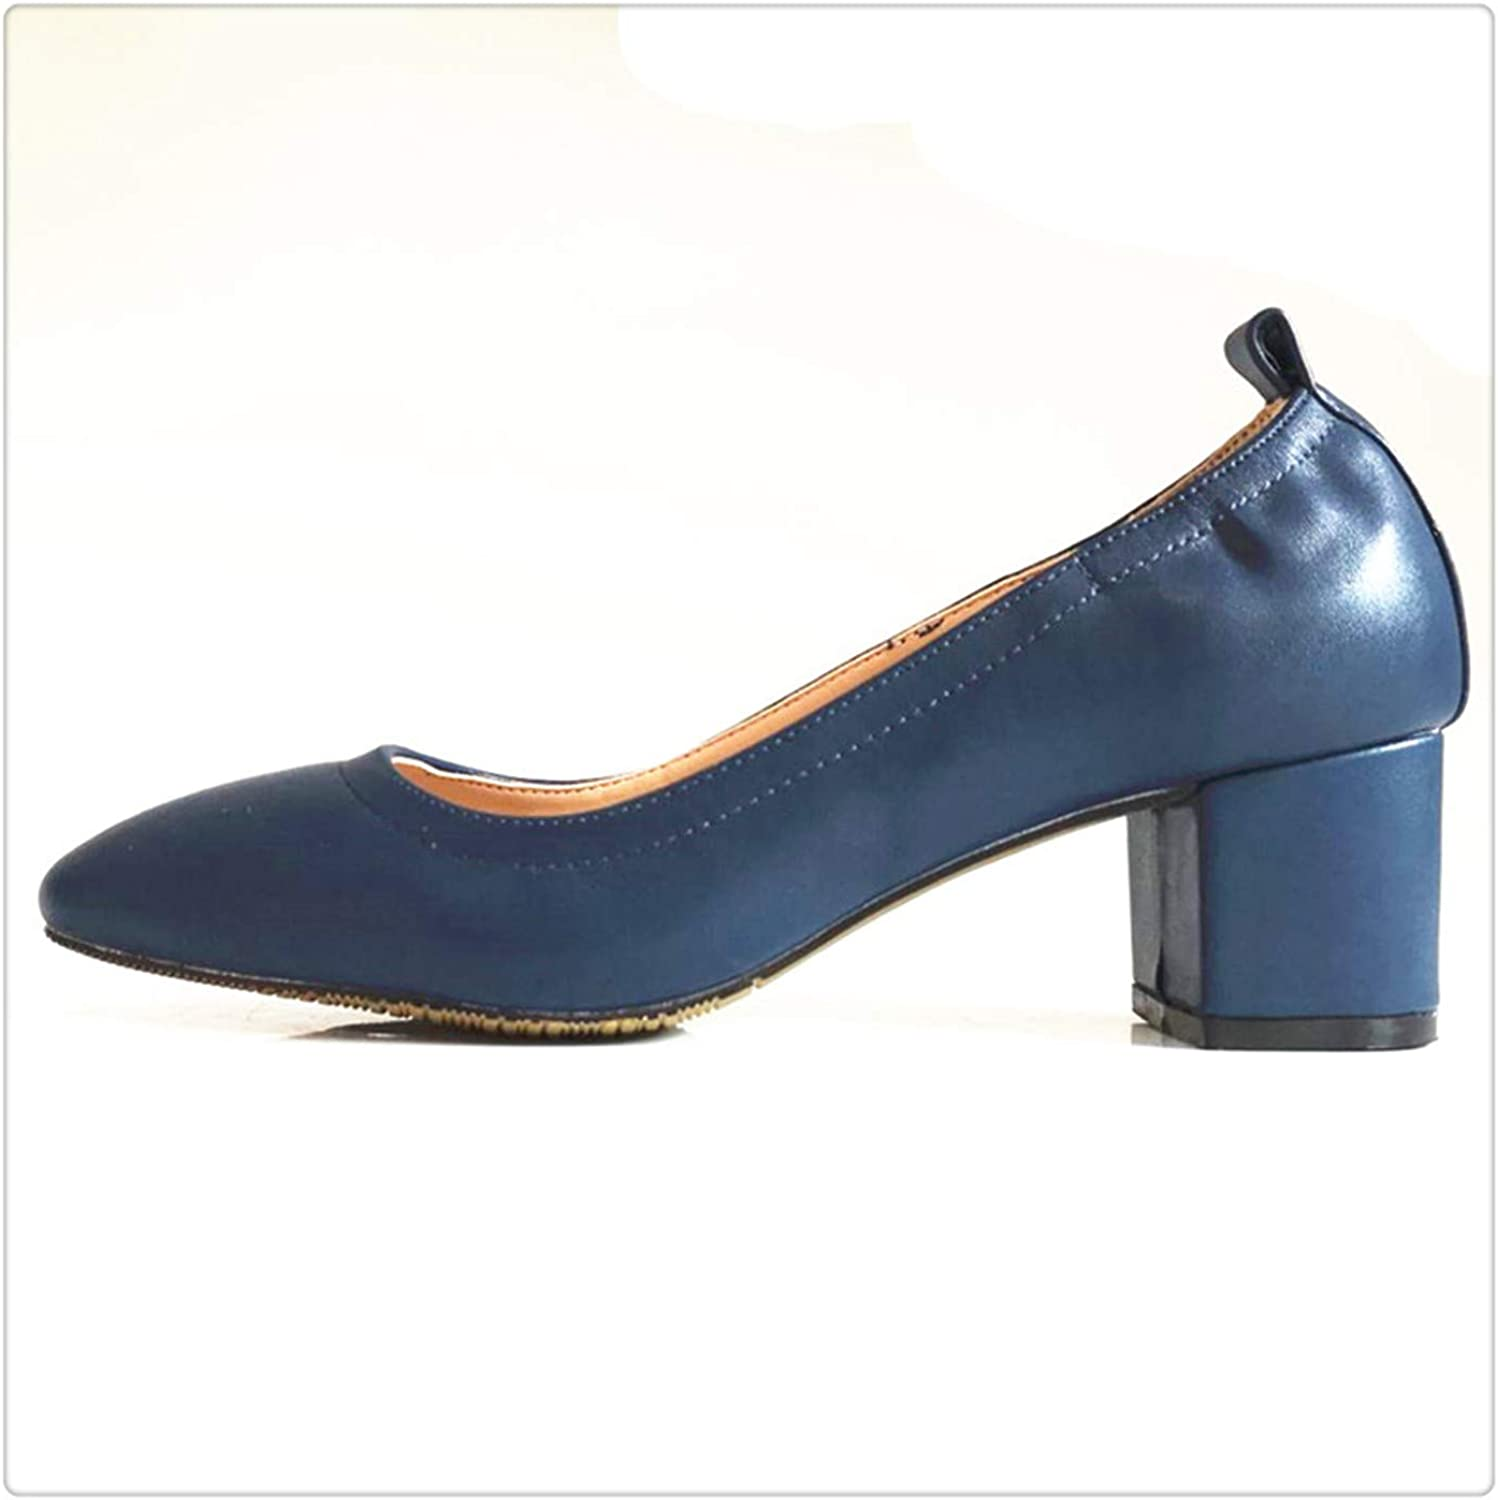 Dmoshibei Genuine Leather orange Office and Career Rounded Toe 2-inch Block Heel Lady Pump